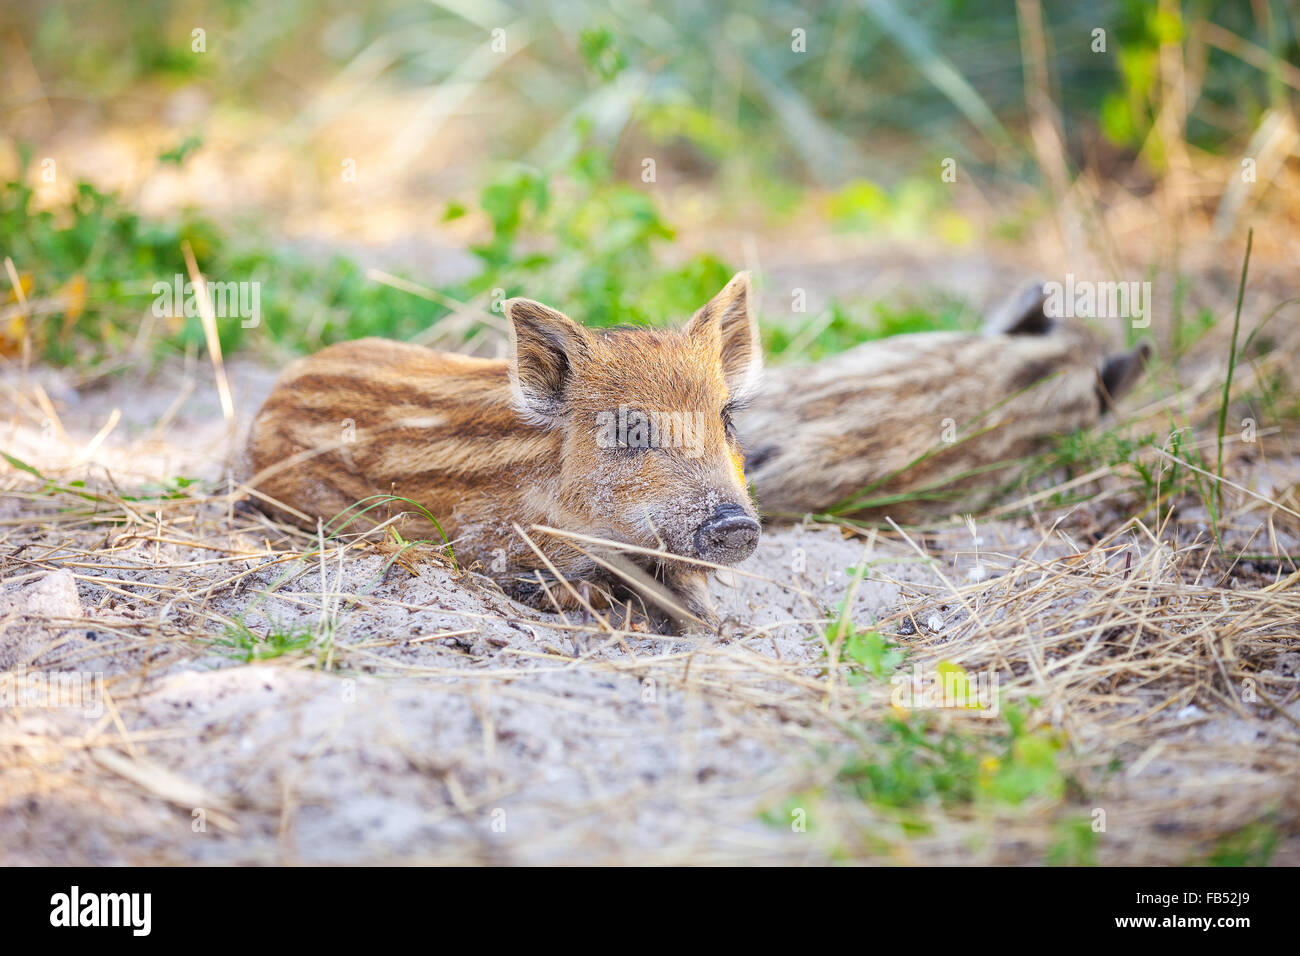 Wild piglets resting in shade on hot summer day - Stock Image